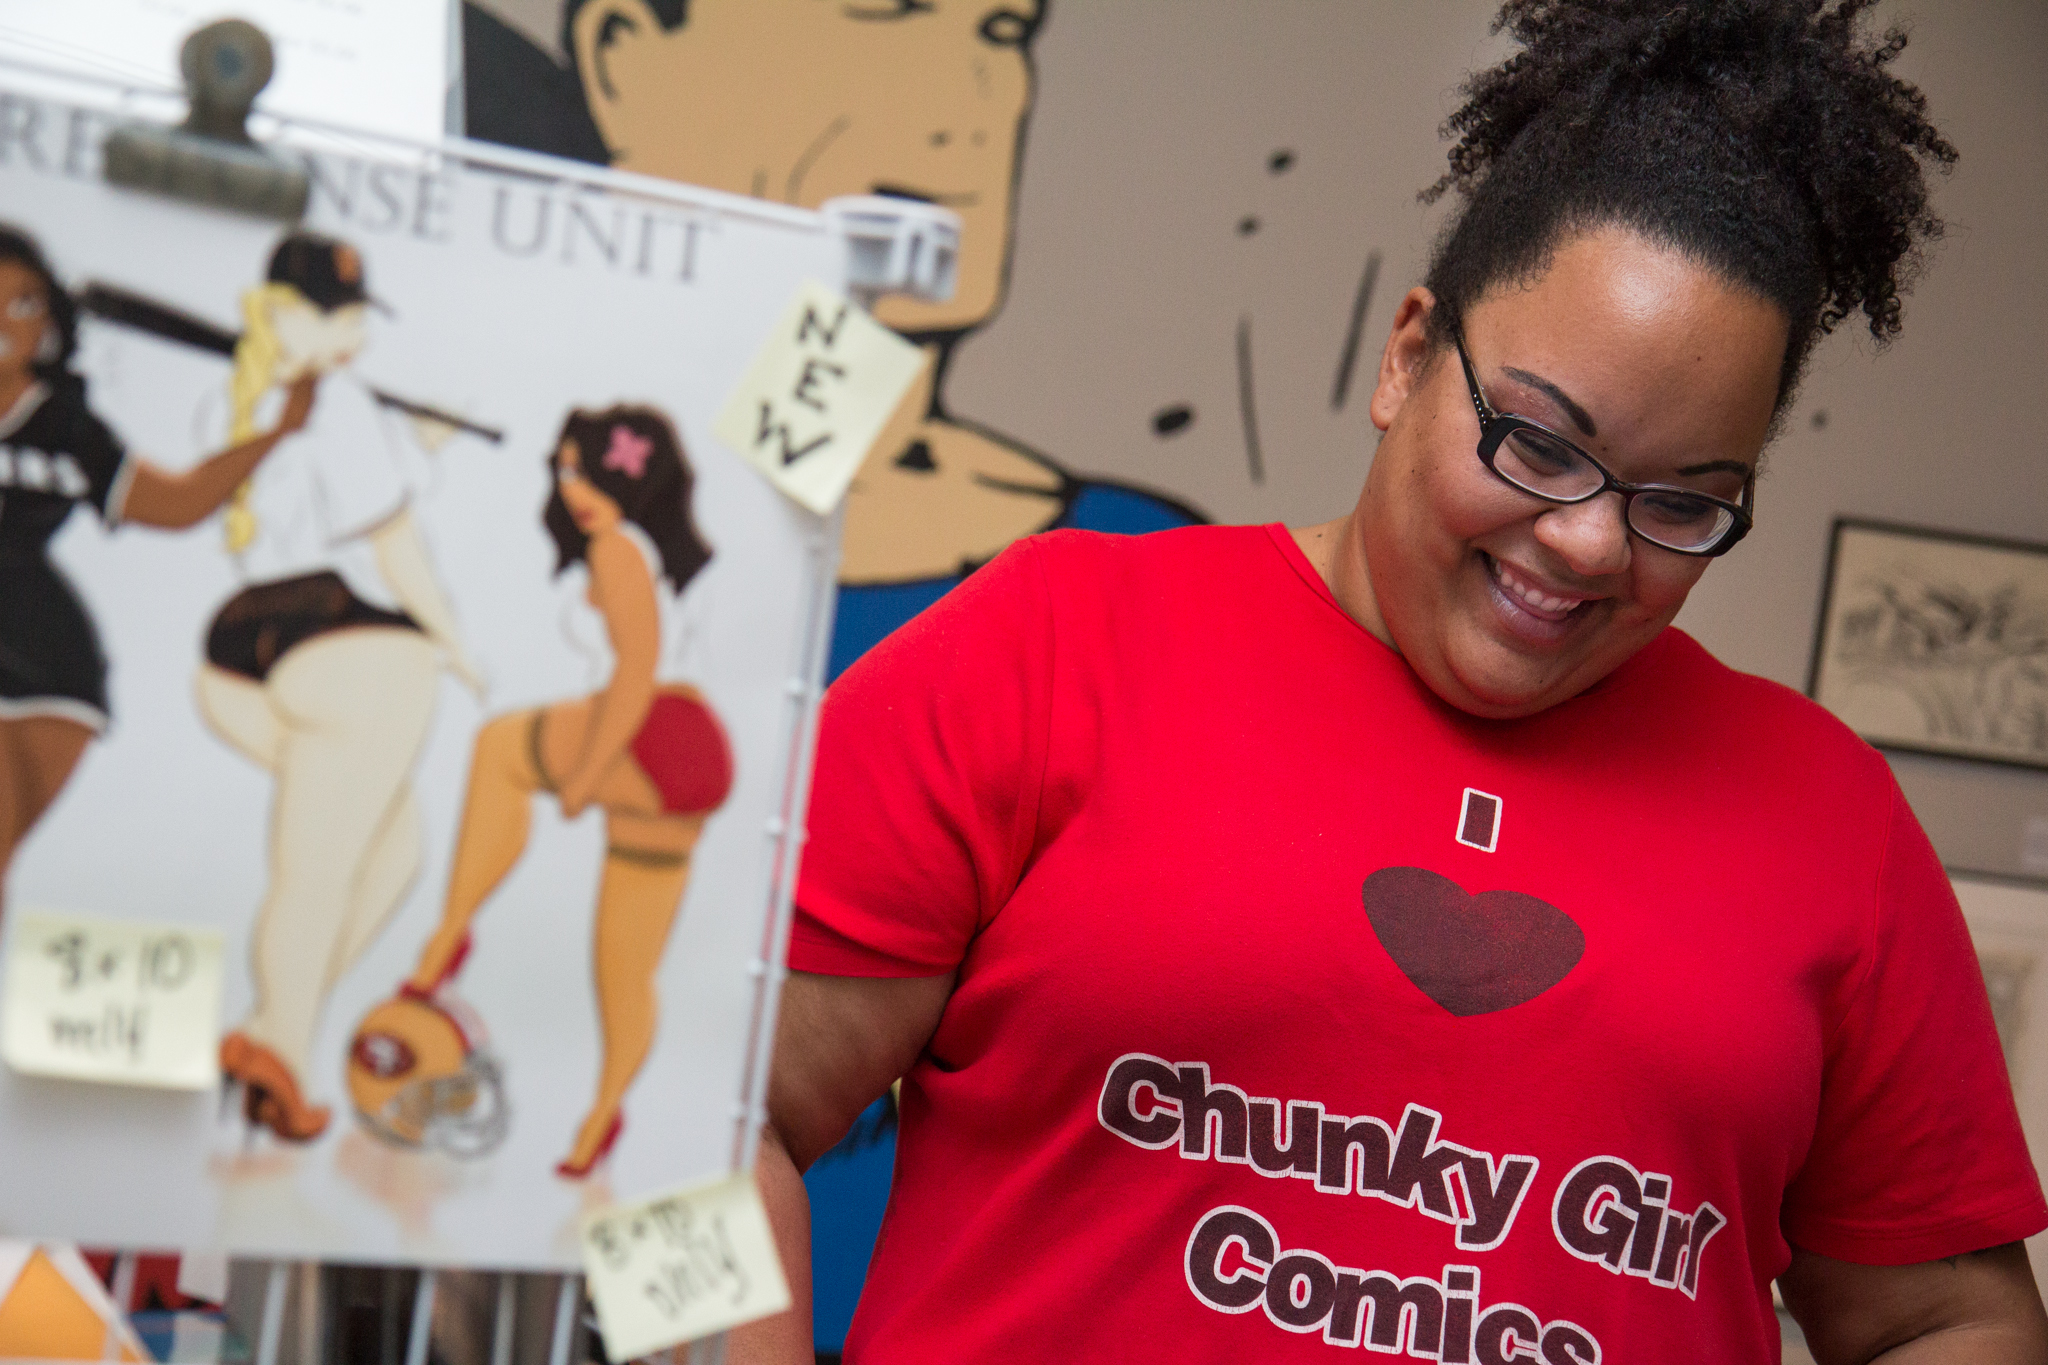 Marisa Garcia presented her smiling, beautiful and curvy heroines at the Expo.